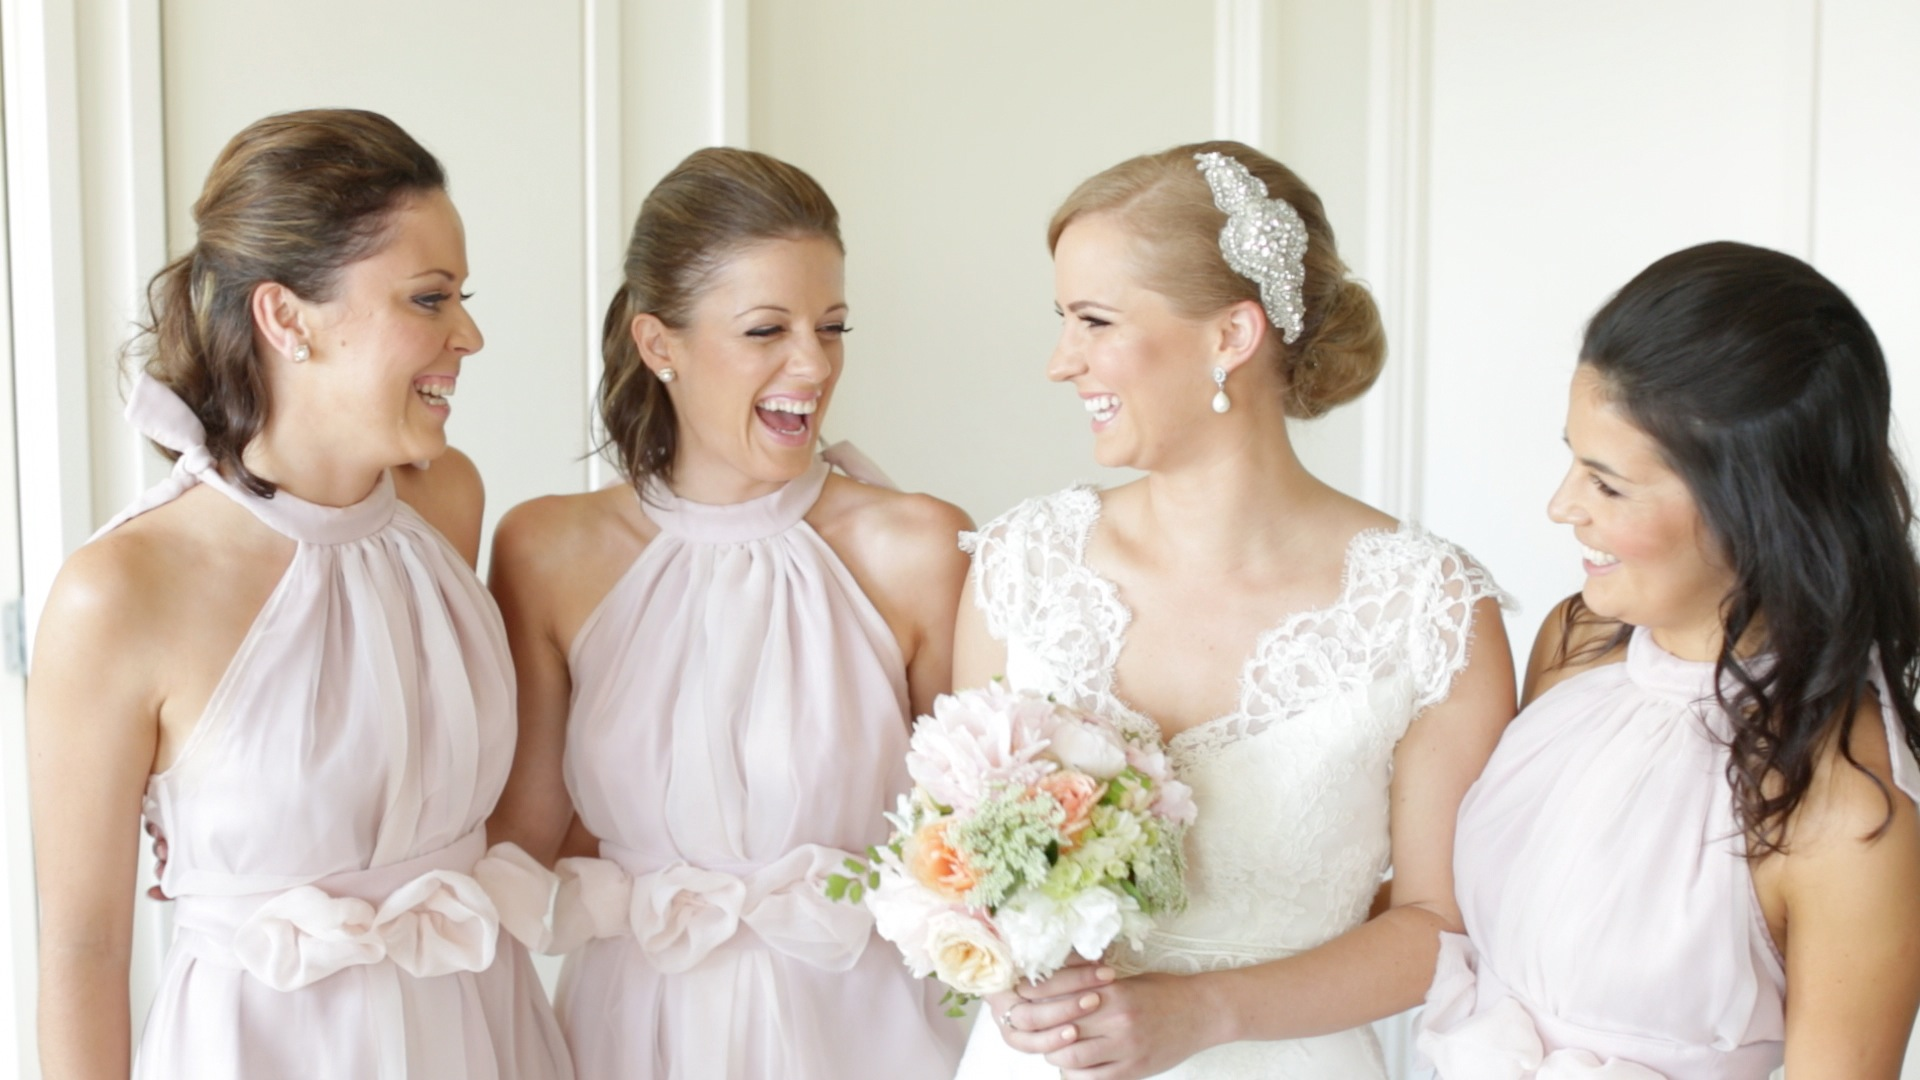 Featured image for 'How to choose your bridesmaid dresses in 5 easy steps' article